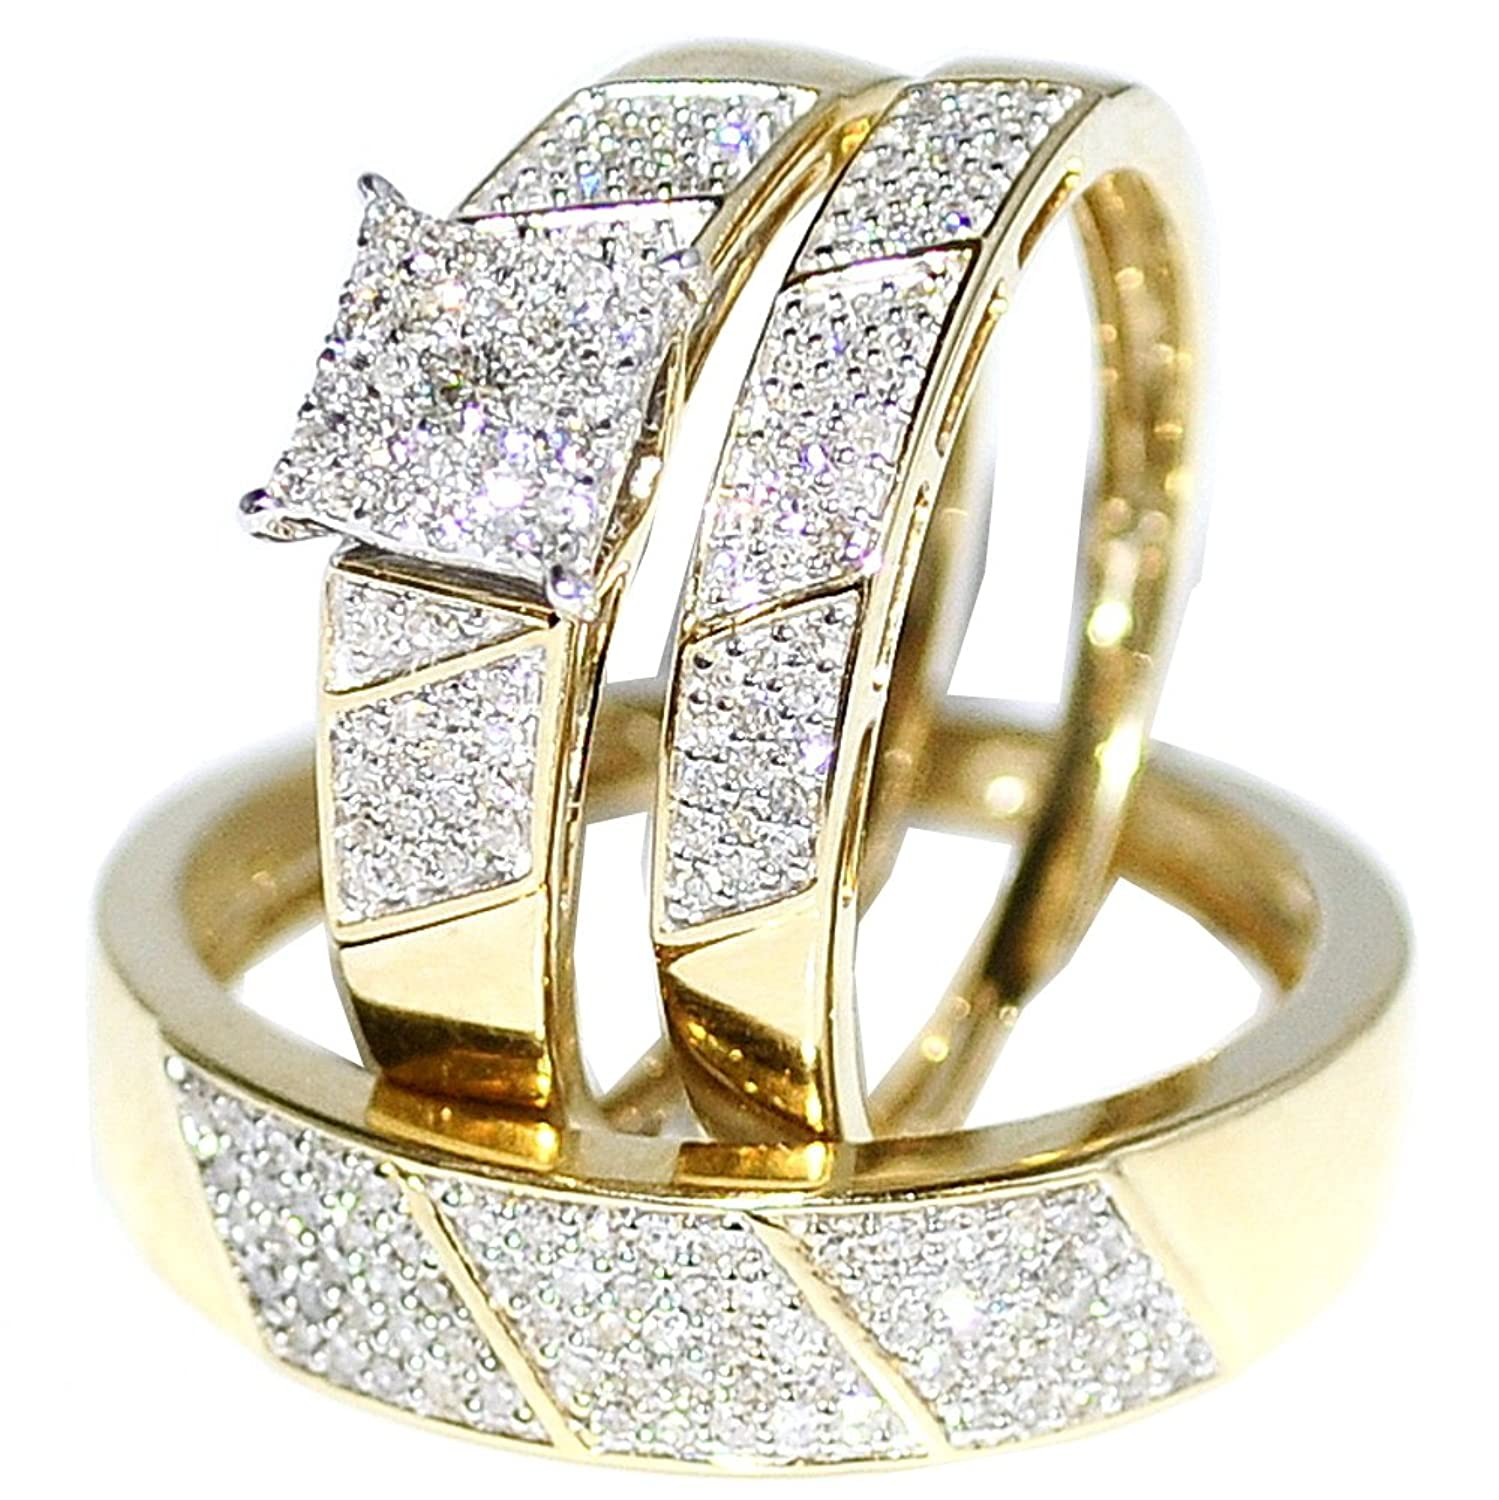 sets ring white diamond carat jewellery shiny and solid heart matching hers wedding his set